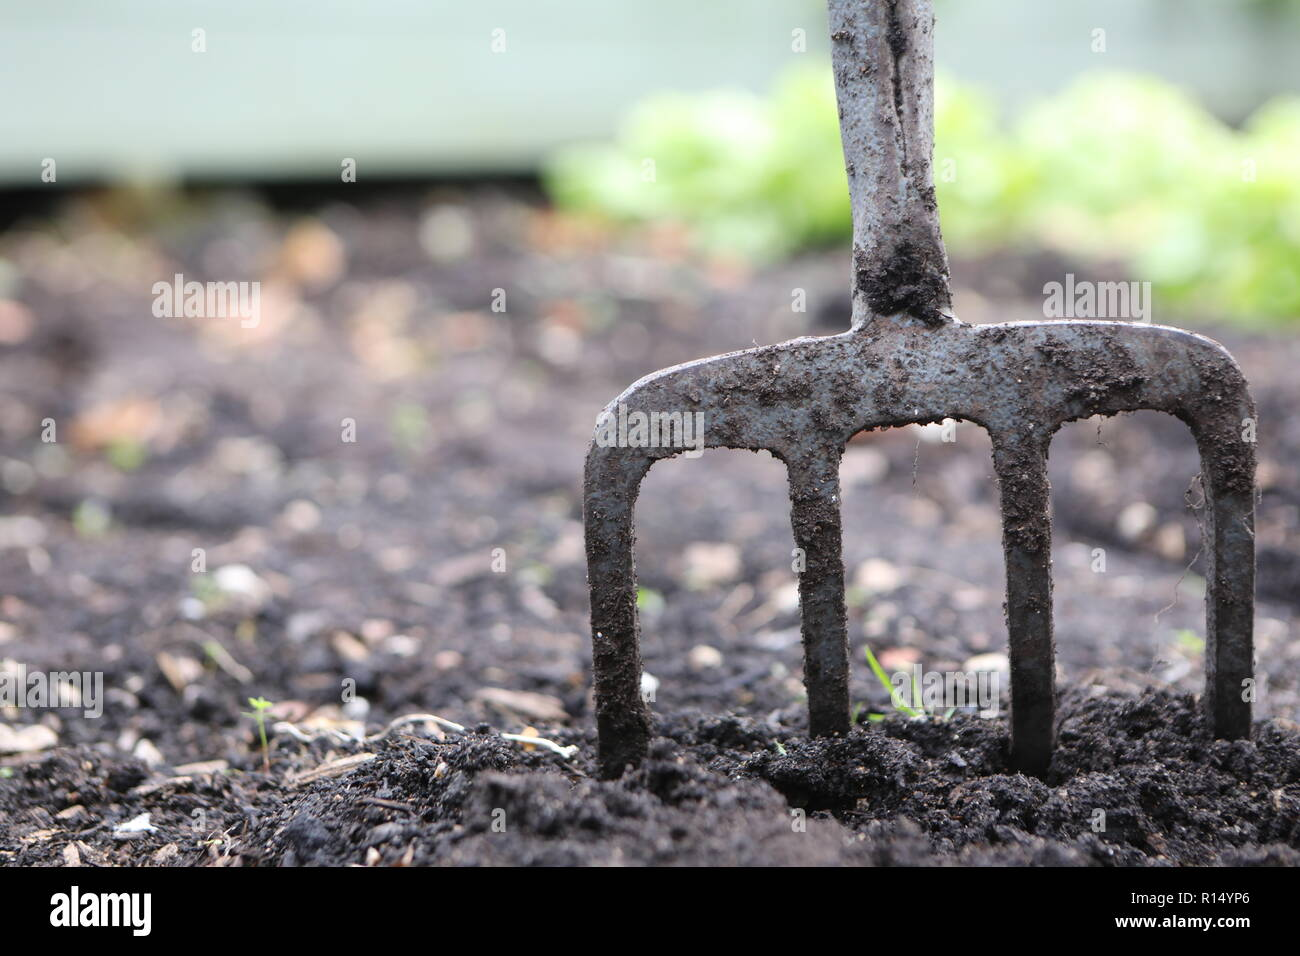 Garden fork in a vegetable patch - Stock Image